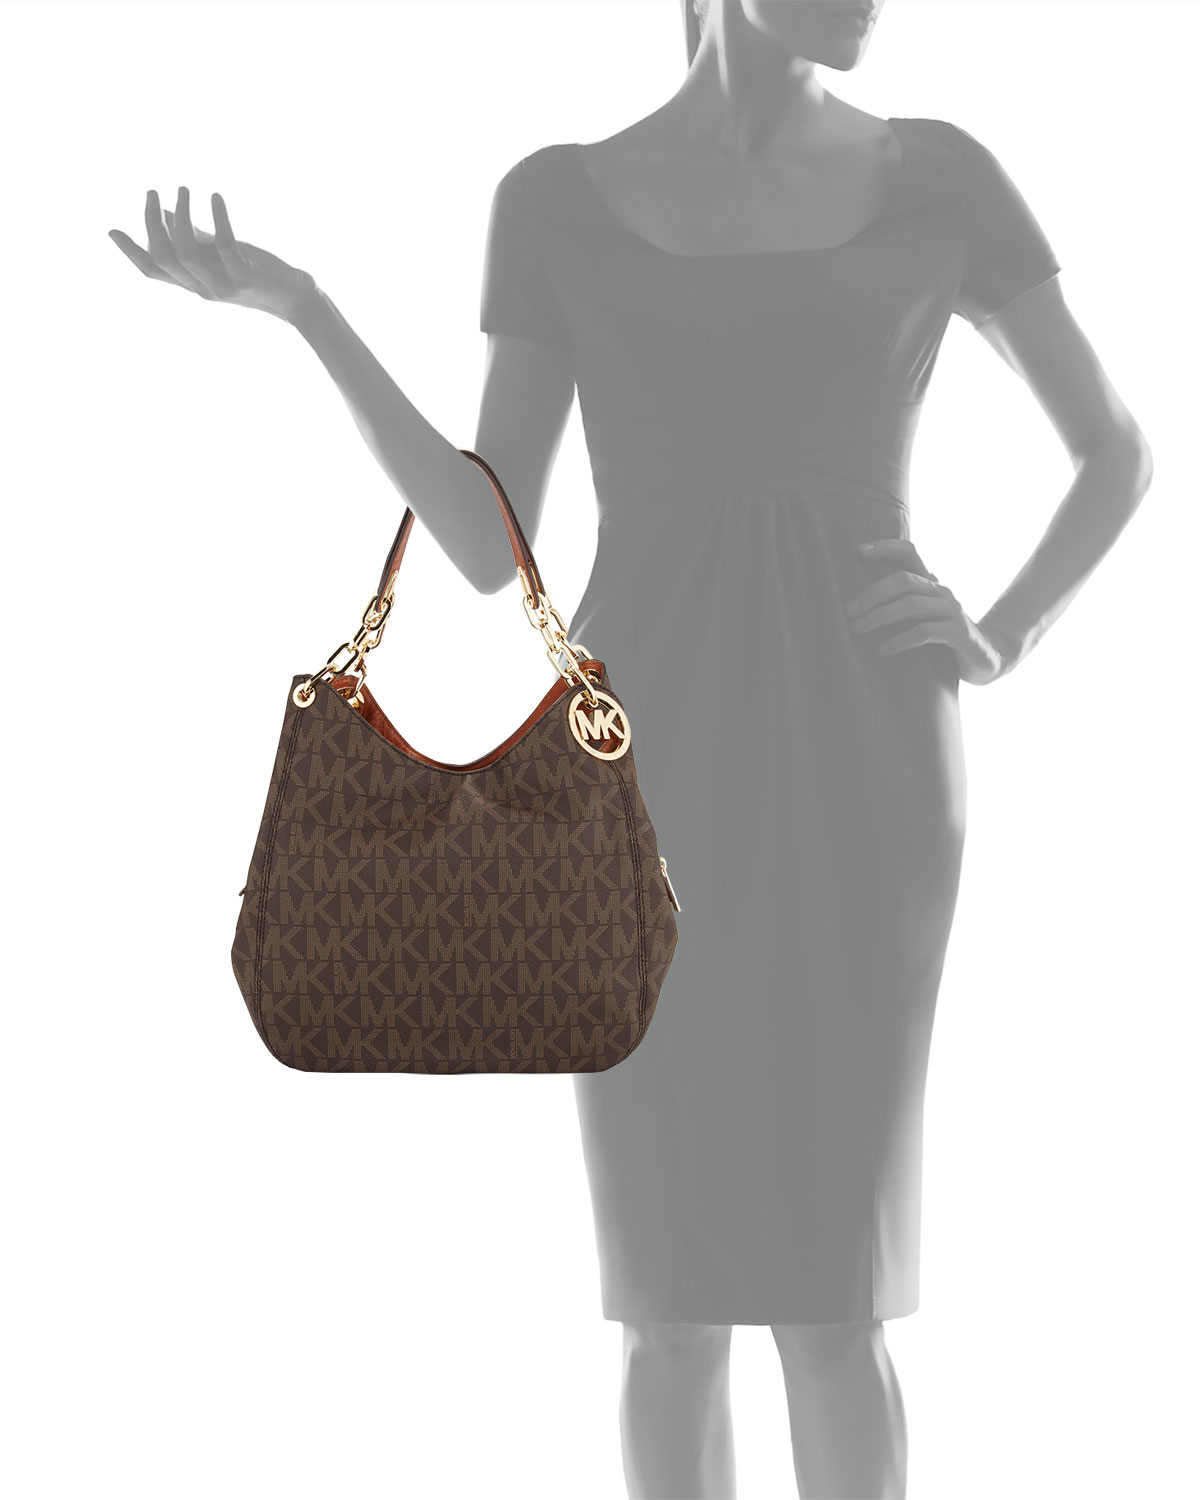 316b04eb9078 ... clearance lyst michael michael kors fulton large tote bag in brown  907d6 a3952